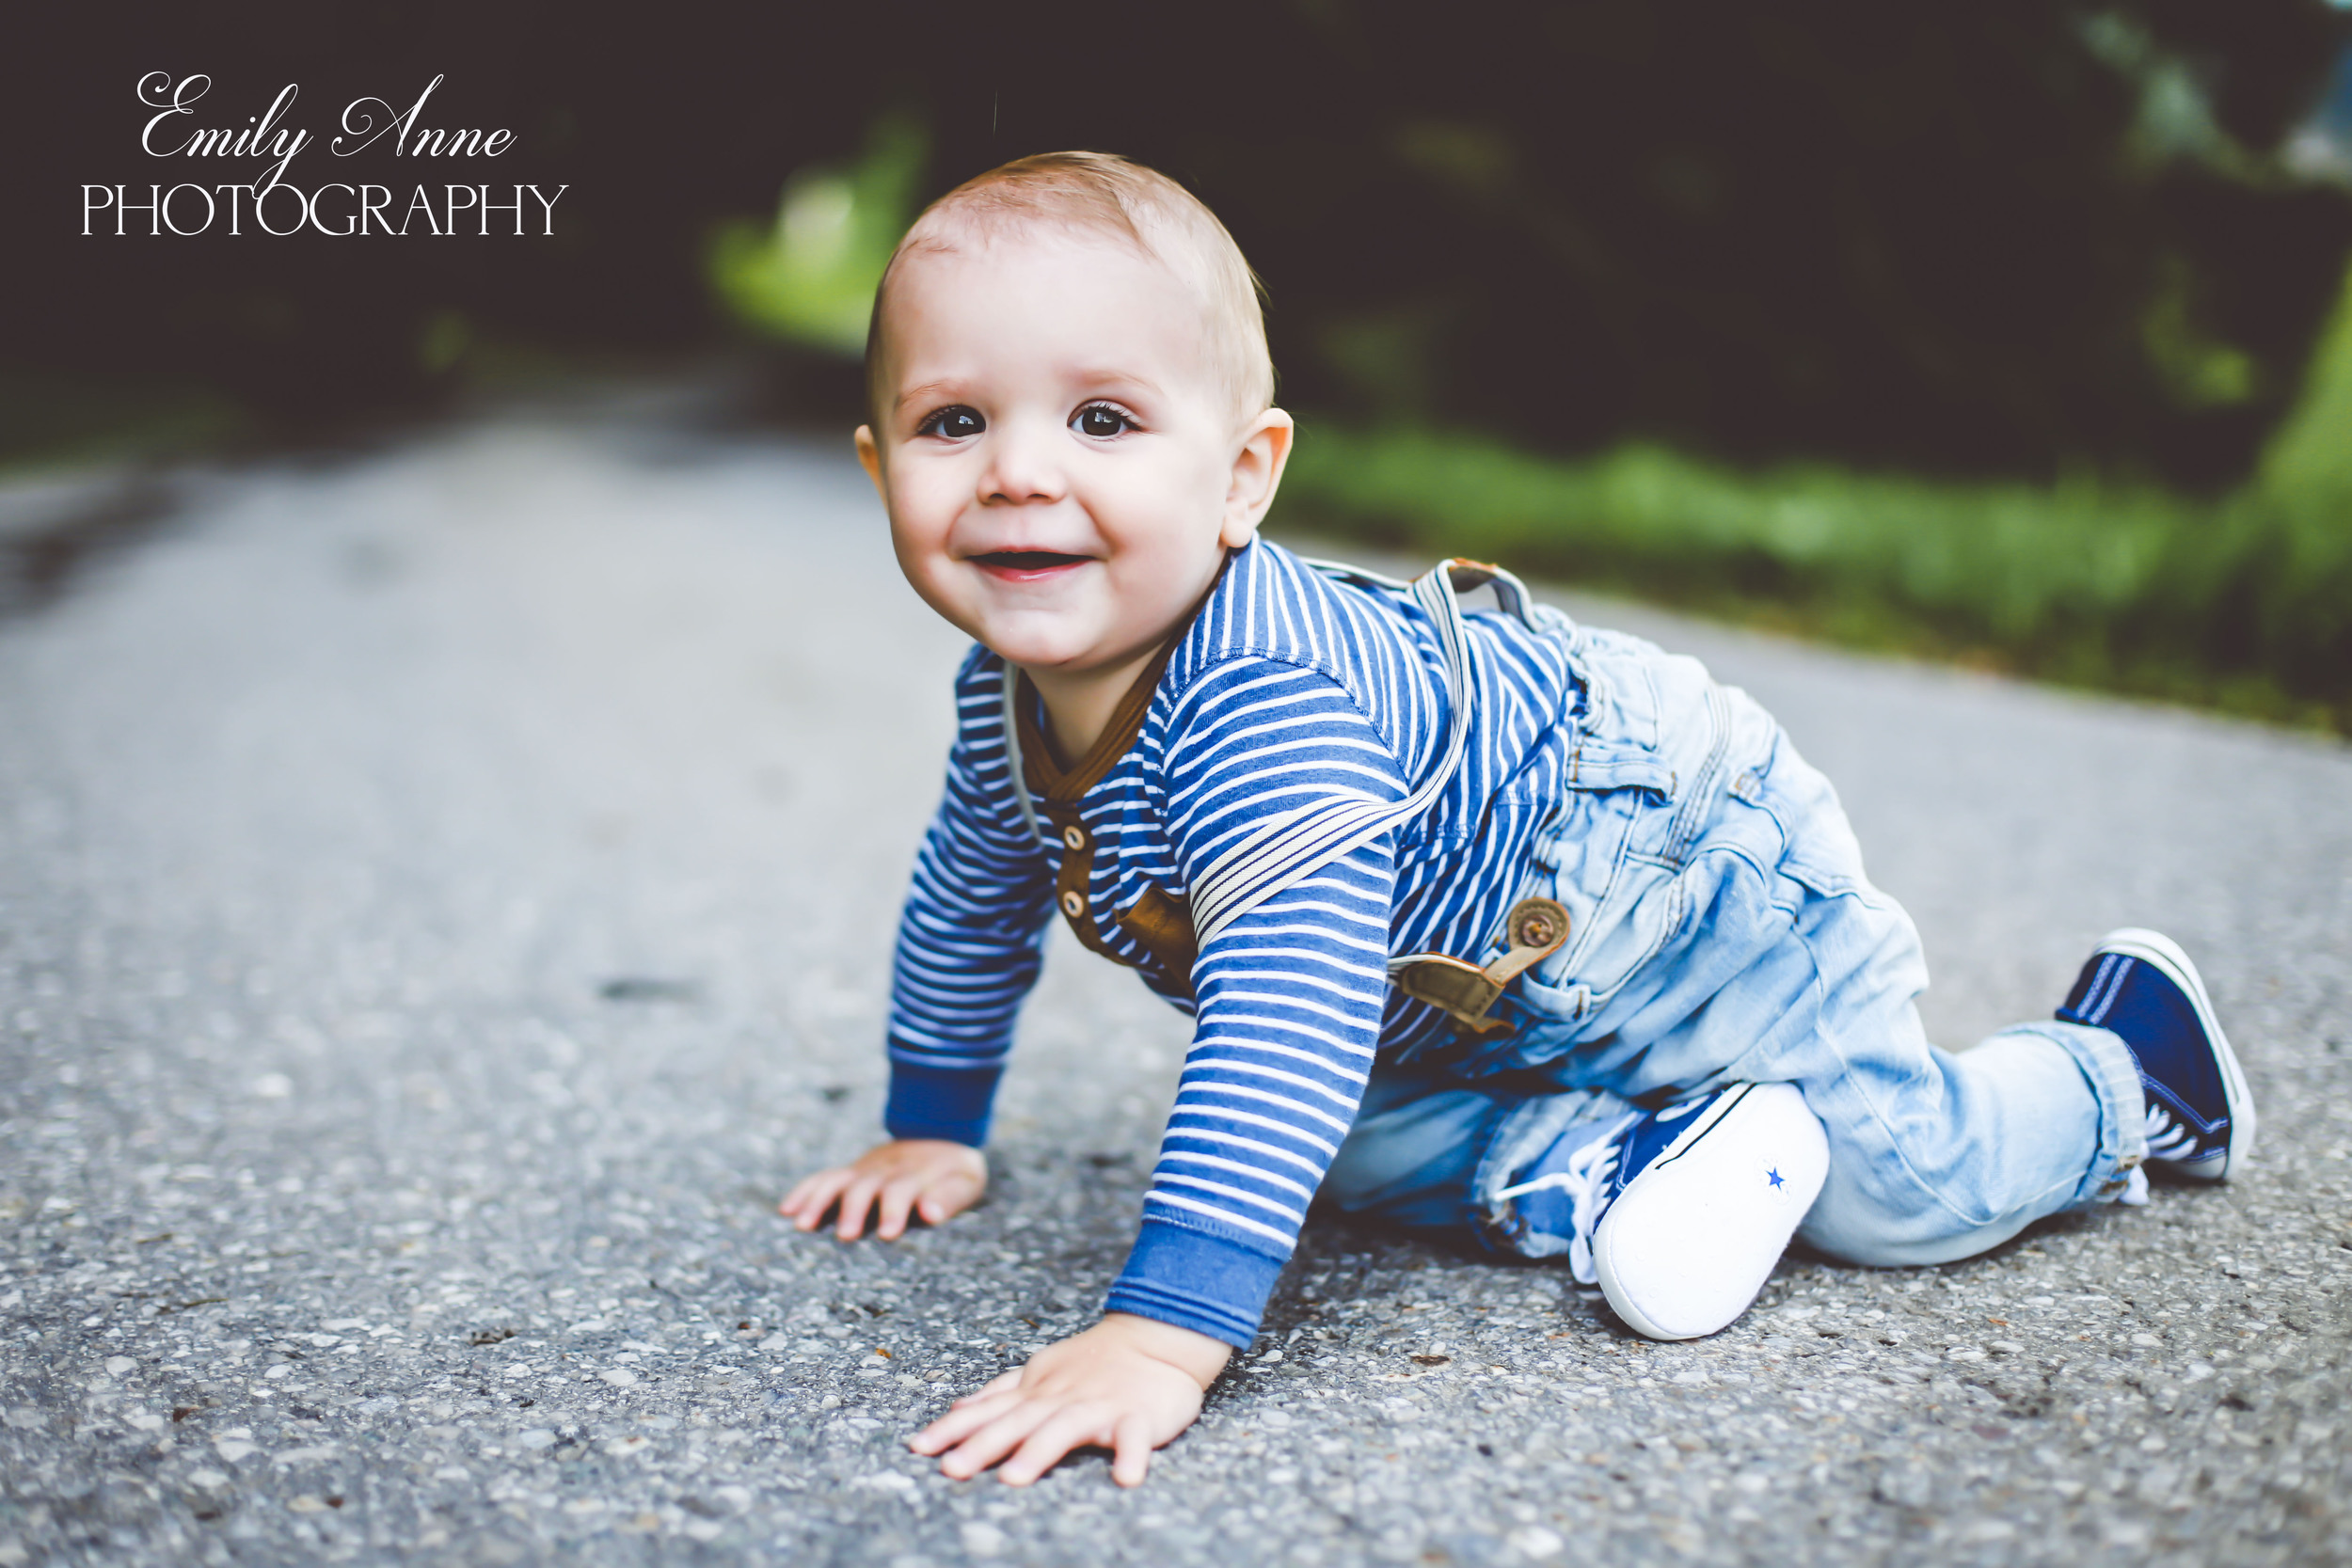 sweet southern family photos nashville/franklin/brentwood top affordable high quality family and child photographer Emily Anne photography  Posing tips for family pics  international photographer. shot in appenzell switzerland  wedding and portrait photos based in nashville tennessee